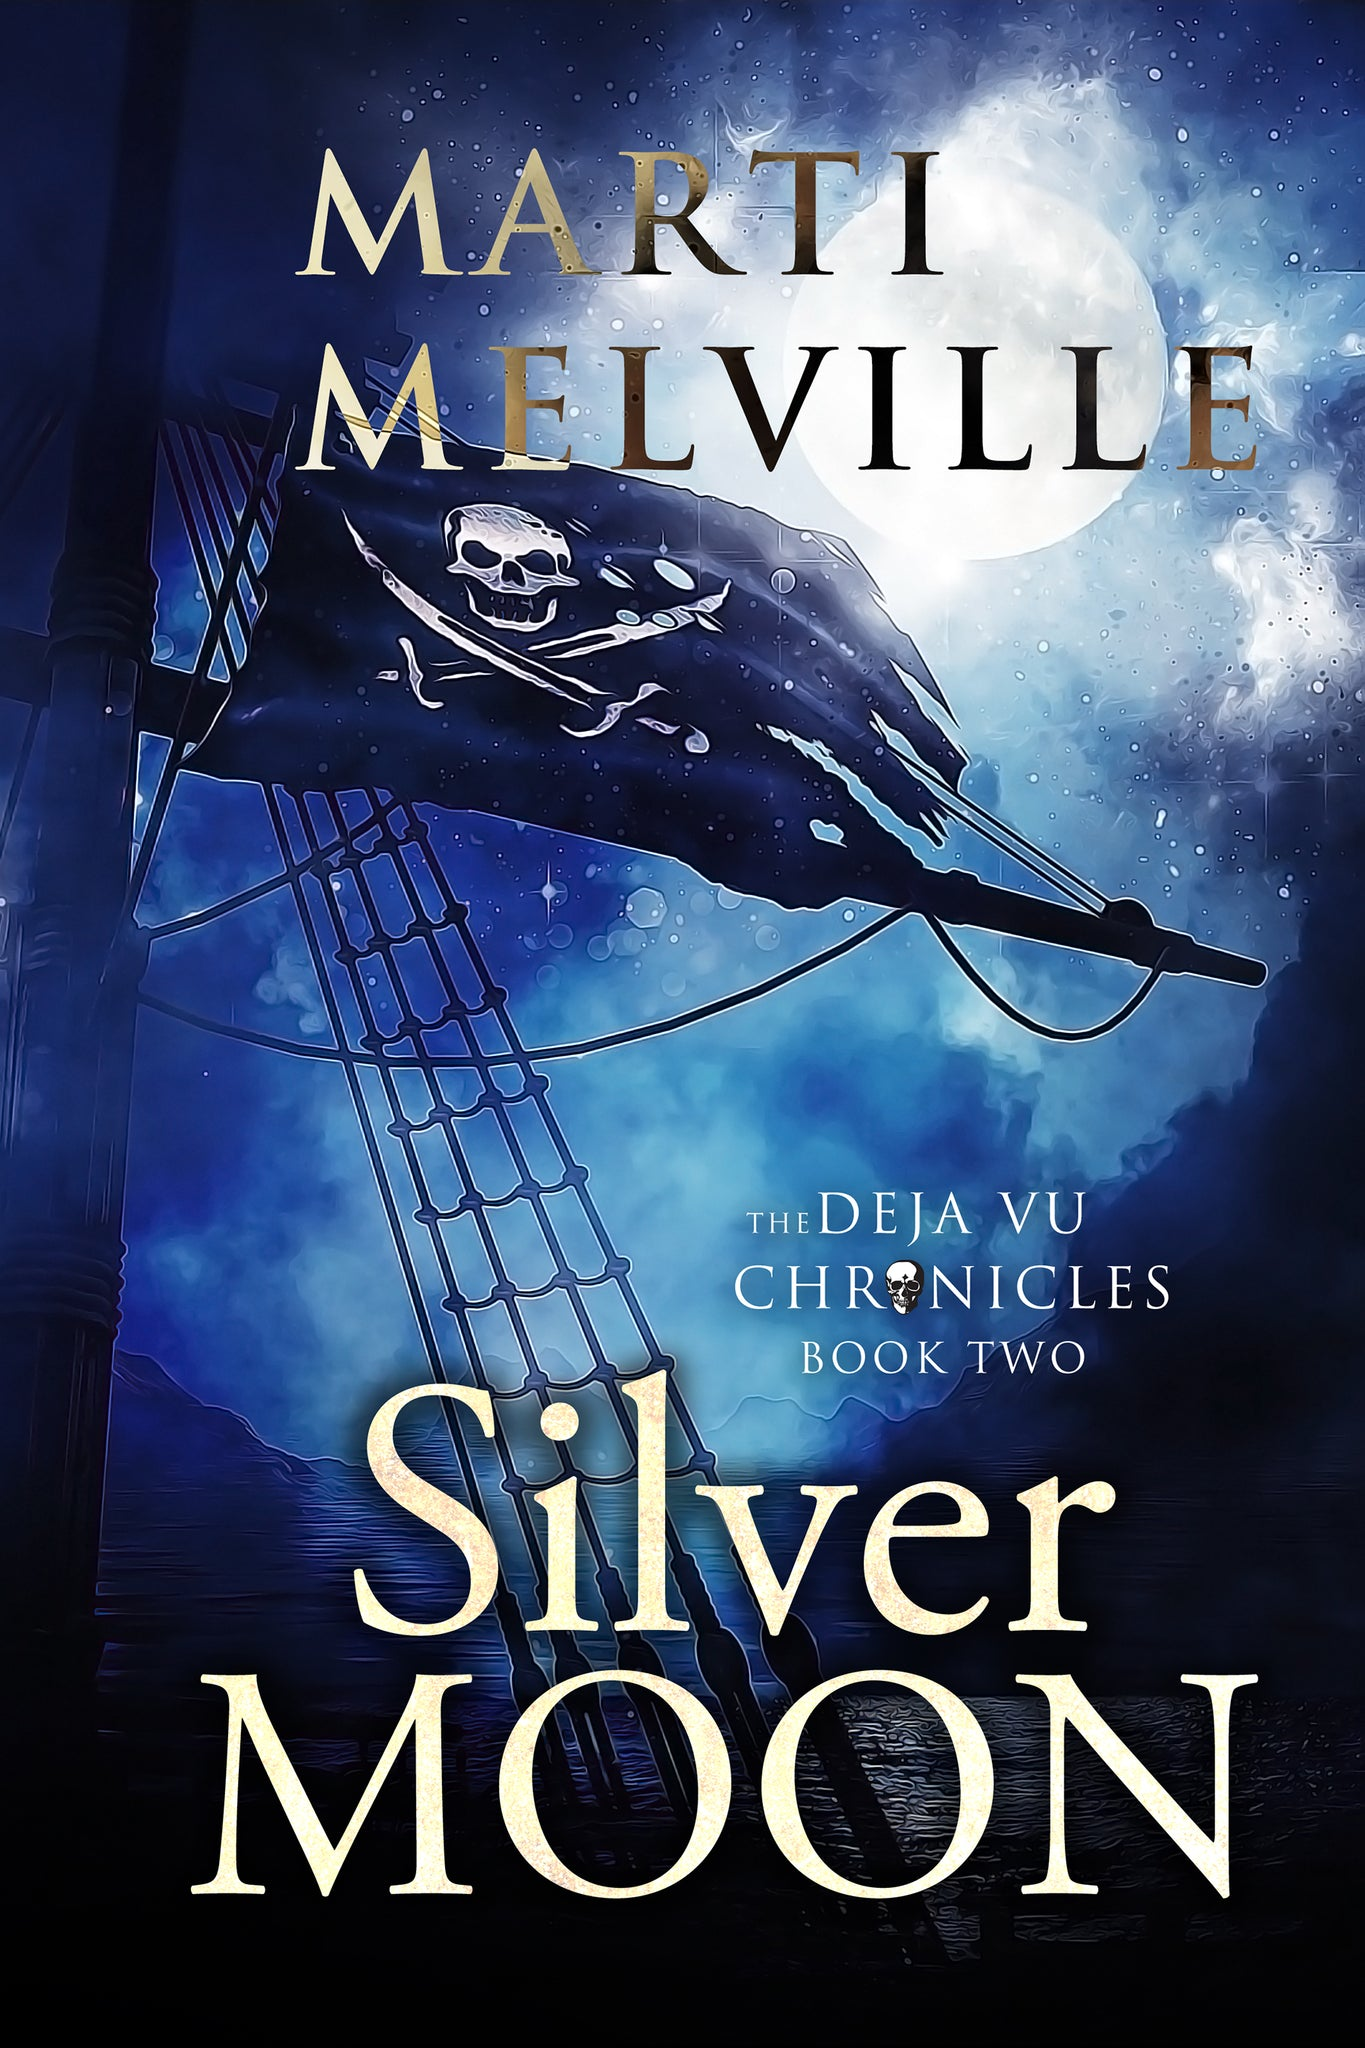 Silver Moon (book 2 - The Deja vu Chronicles)